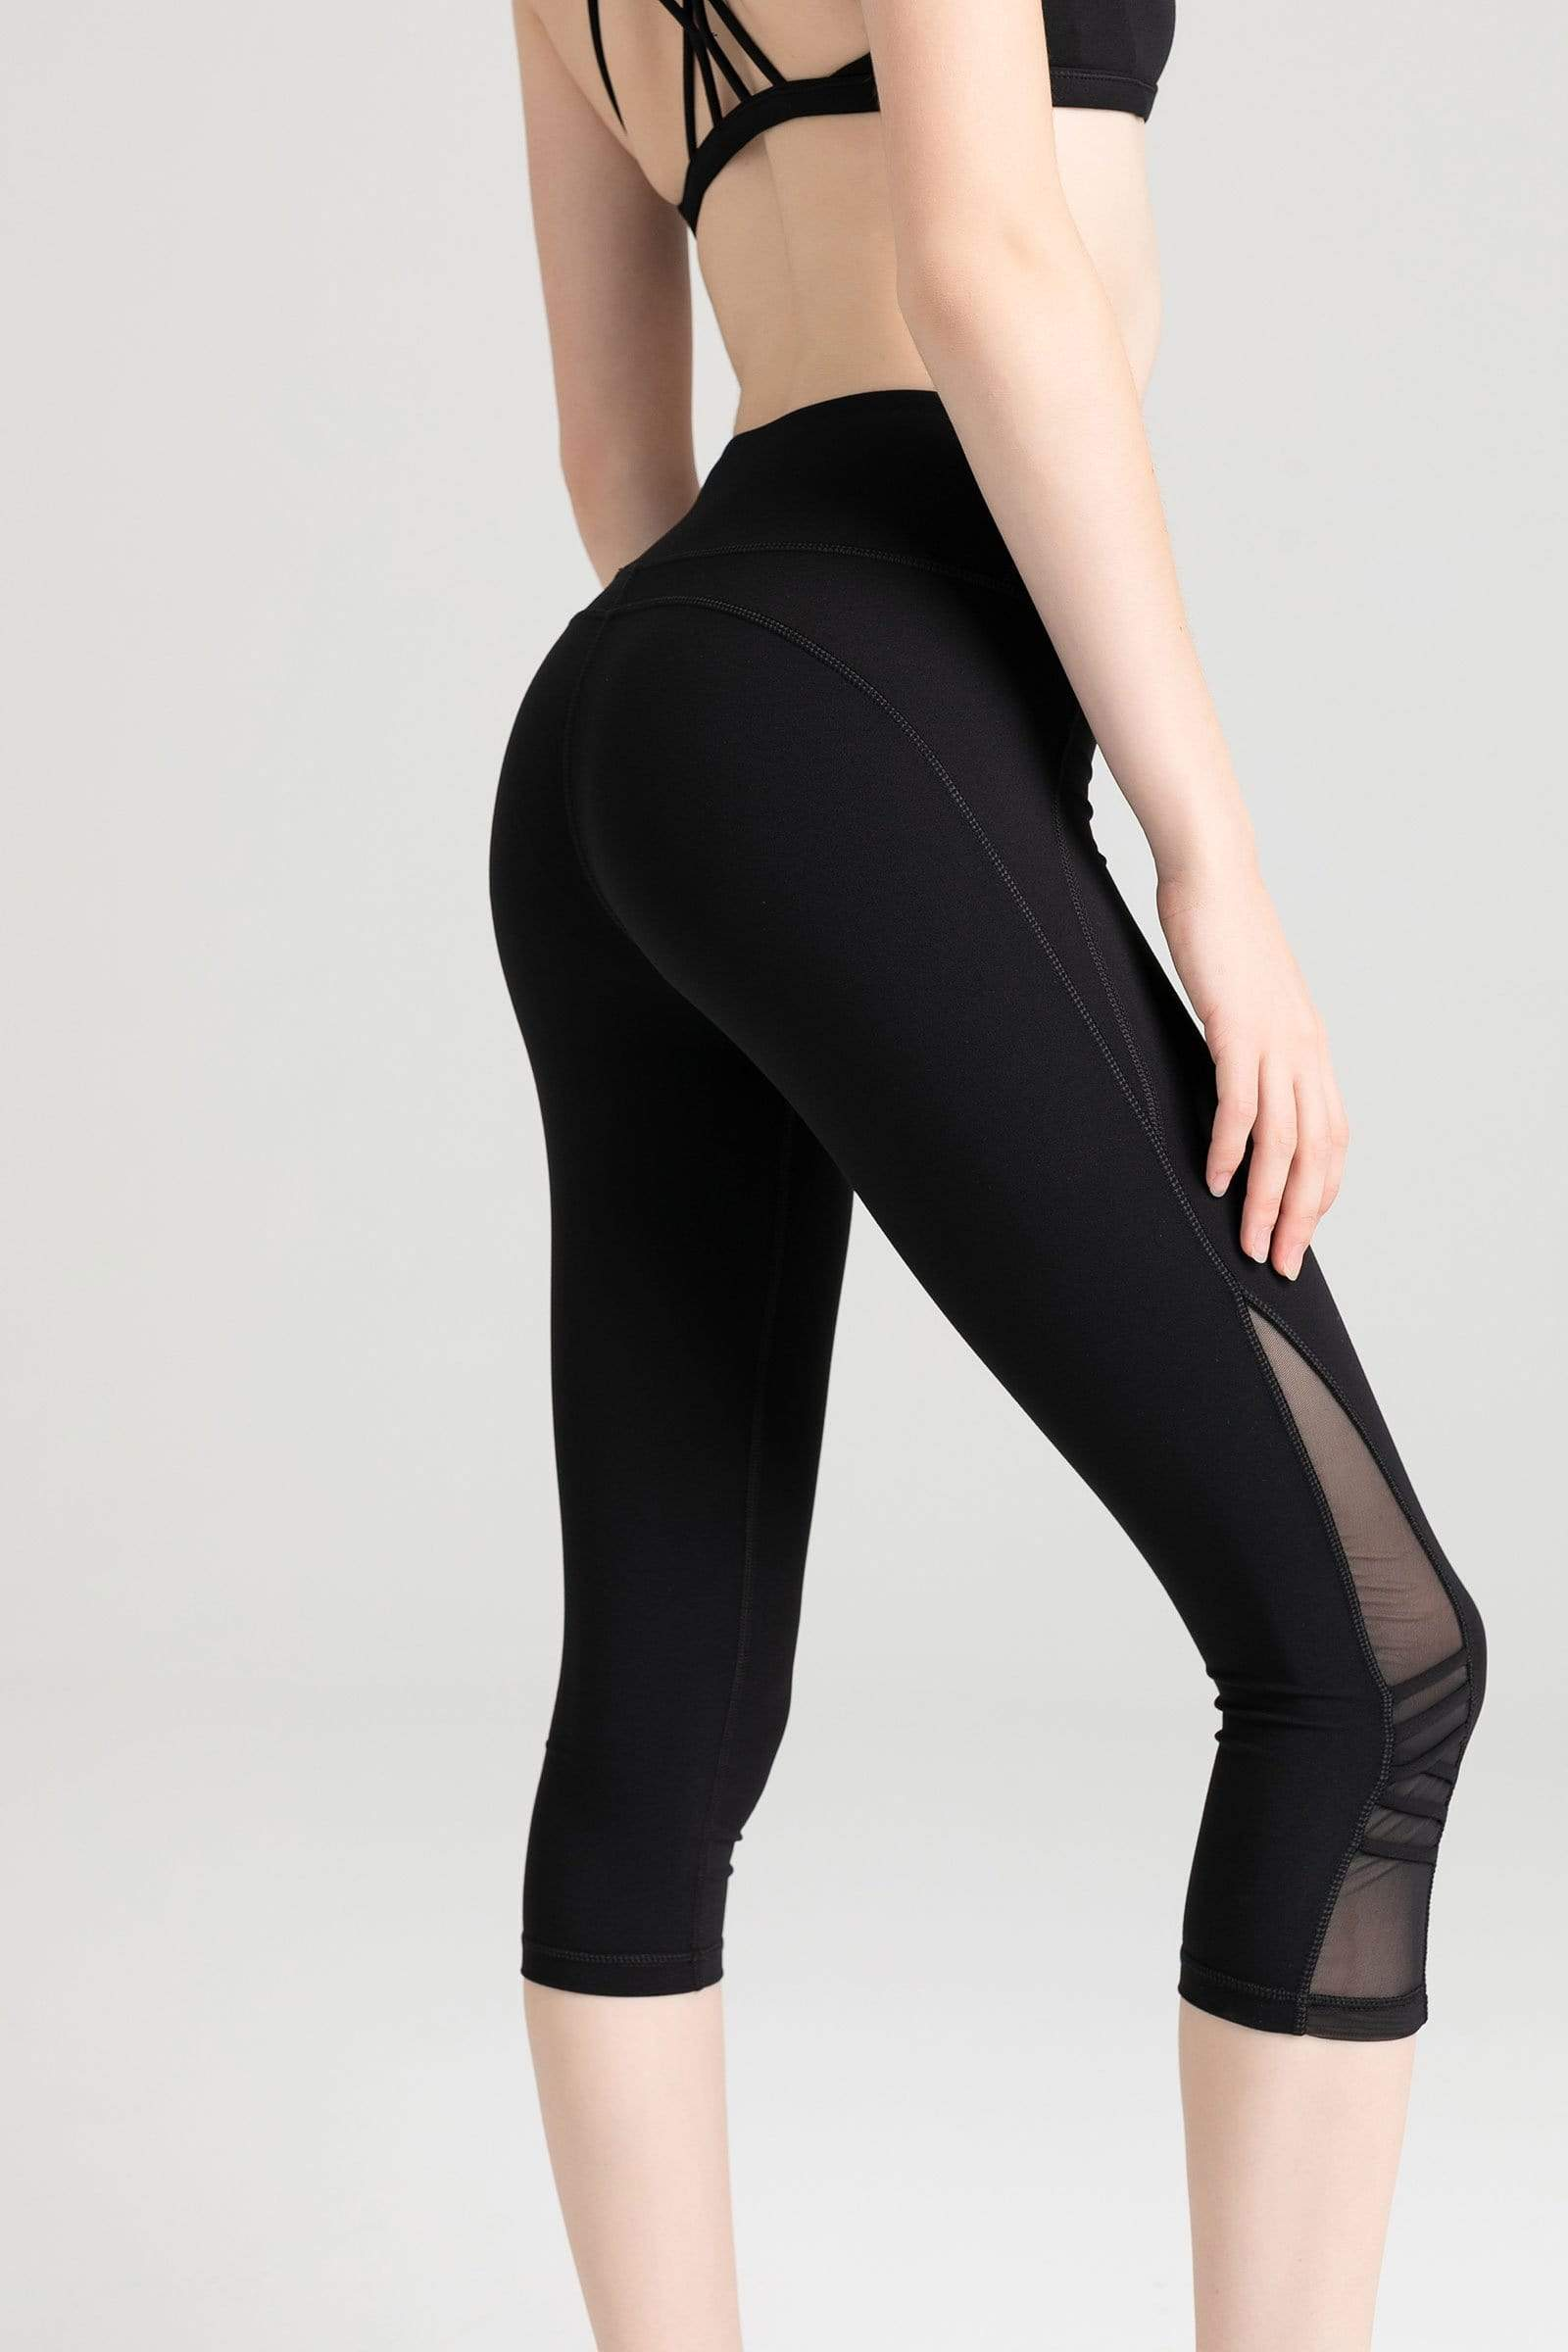 Carbon Black Mesh Crop Leggings